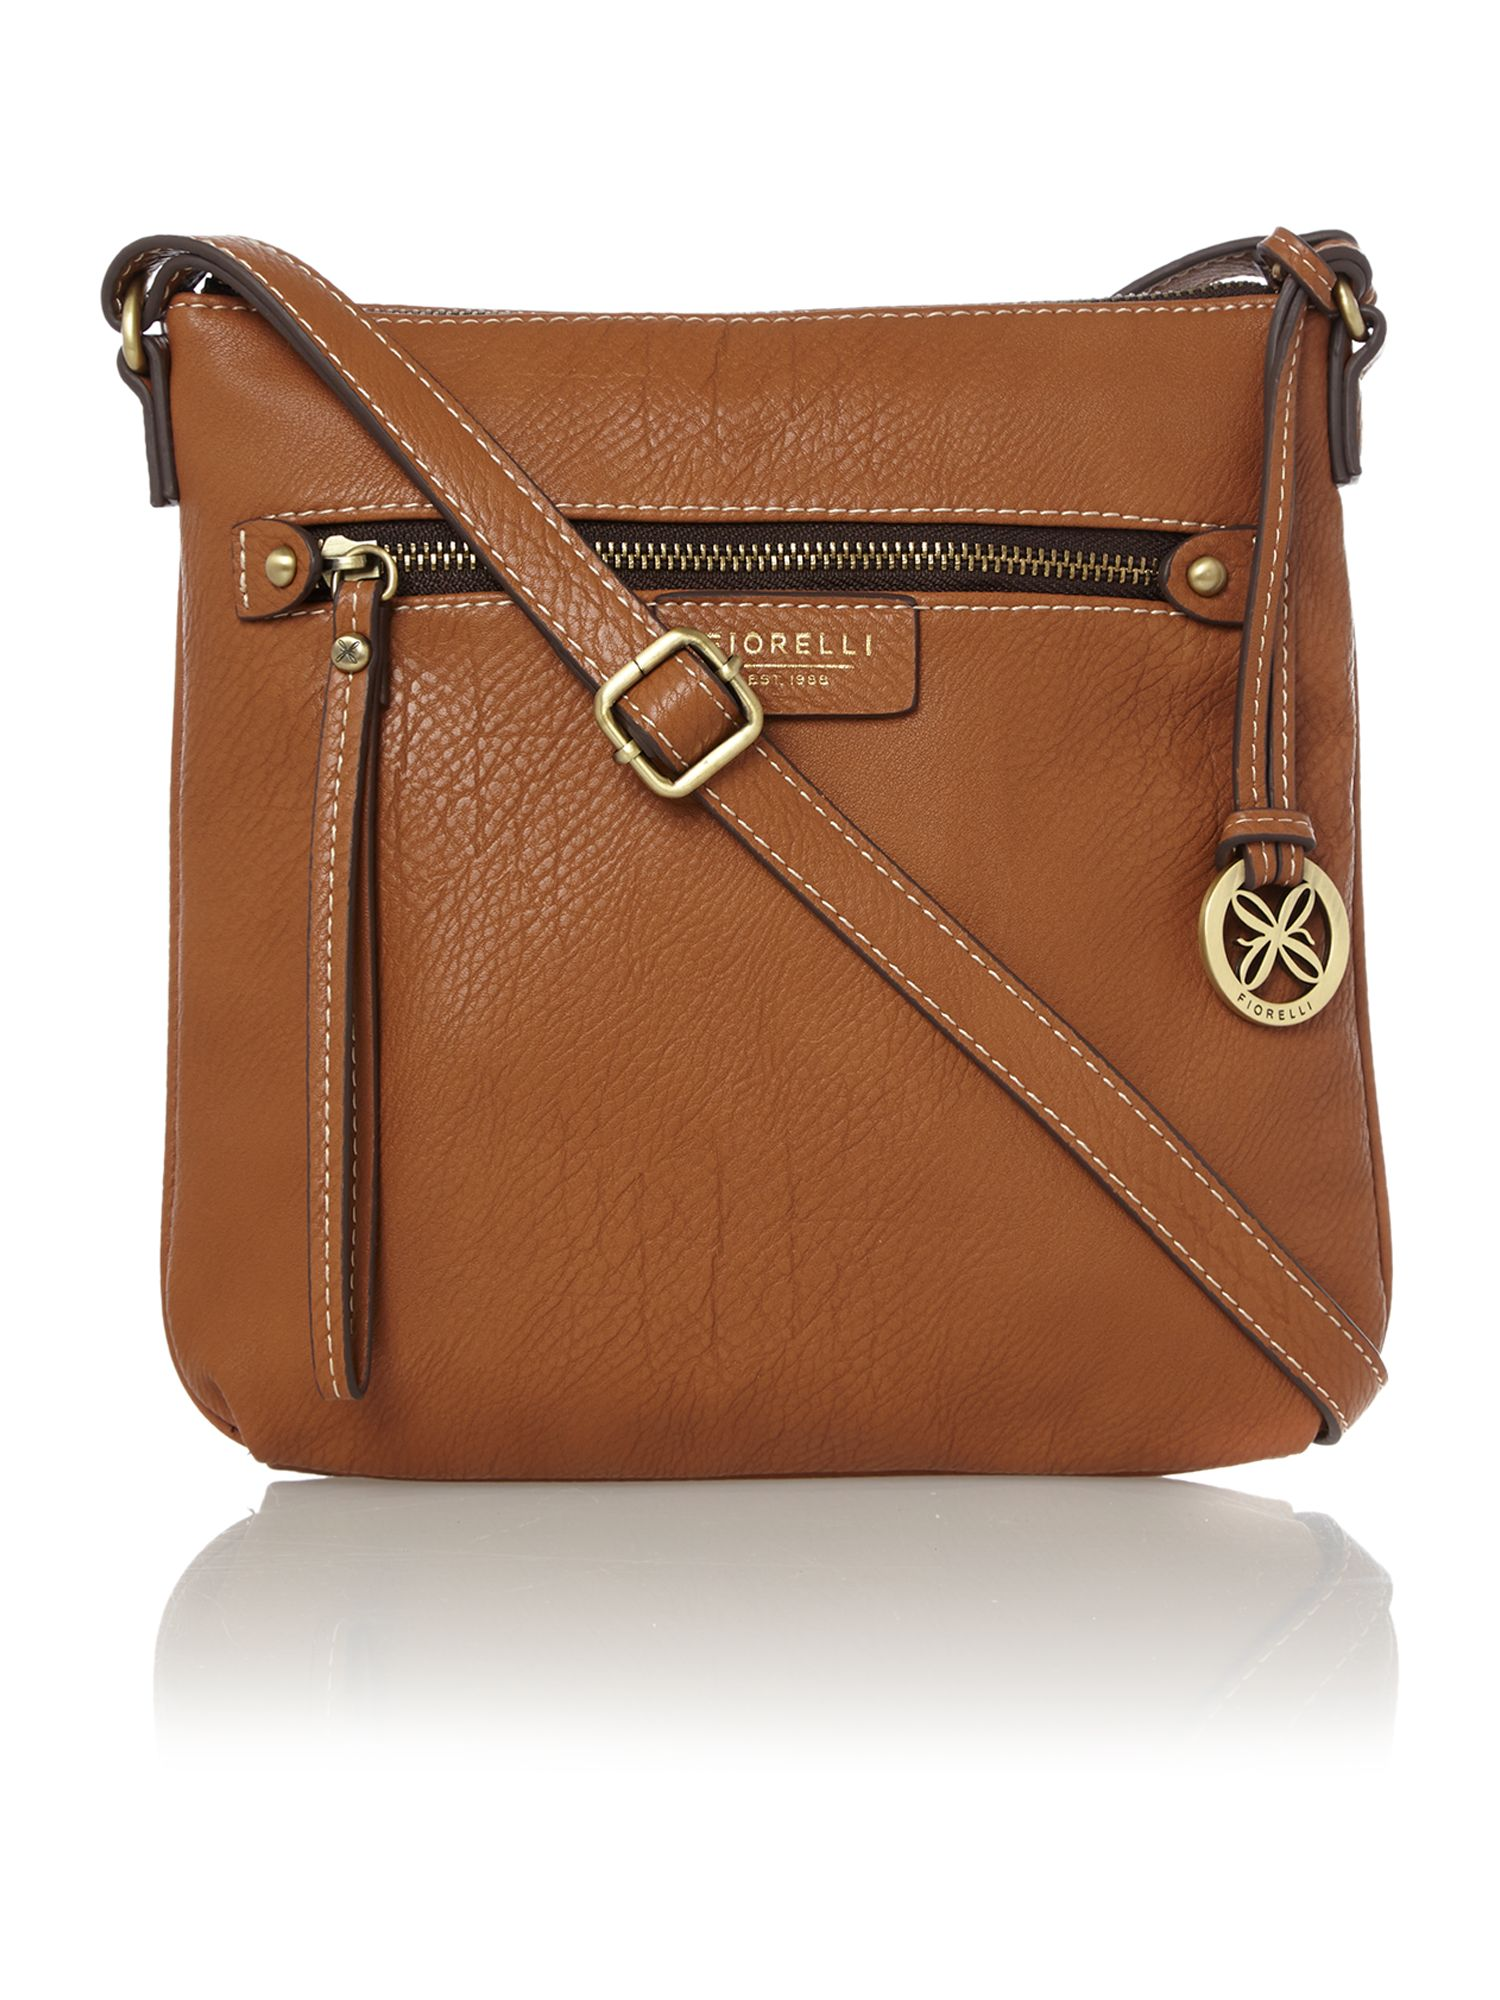 Phoebe tan cross body bag